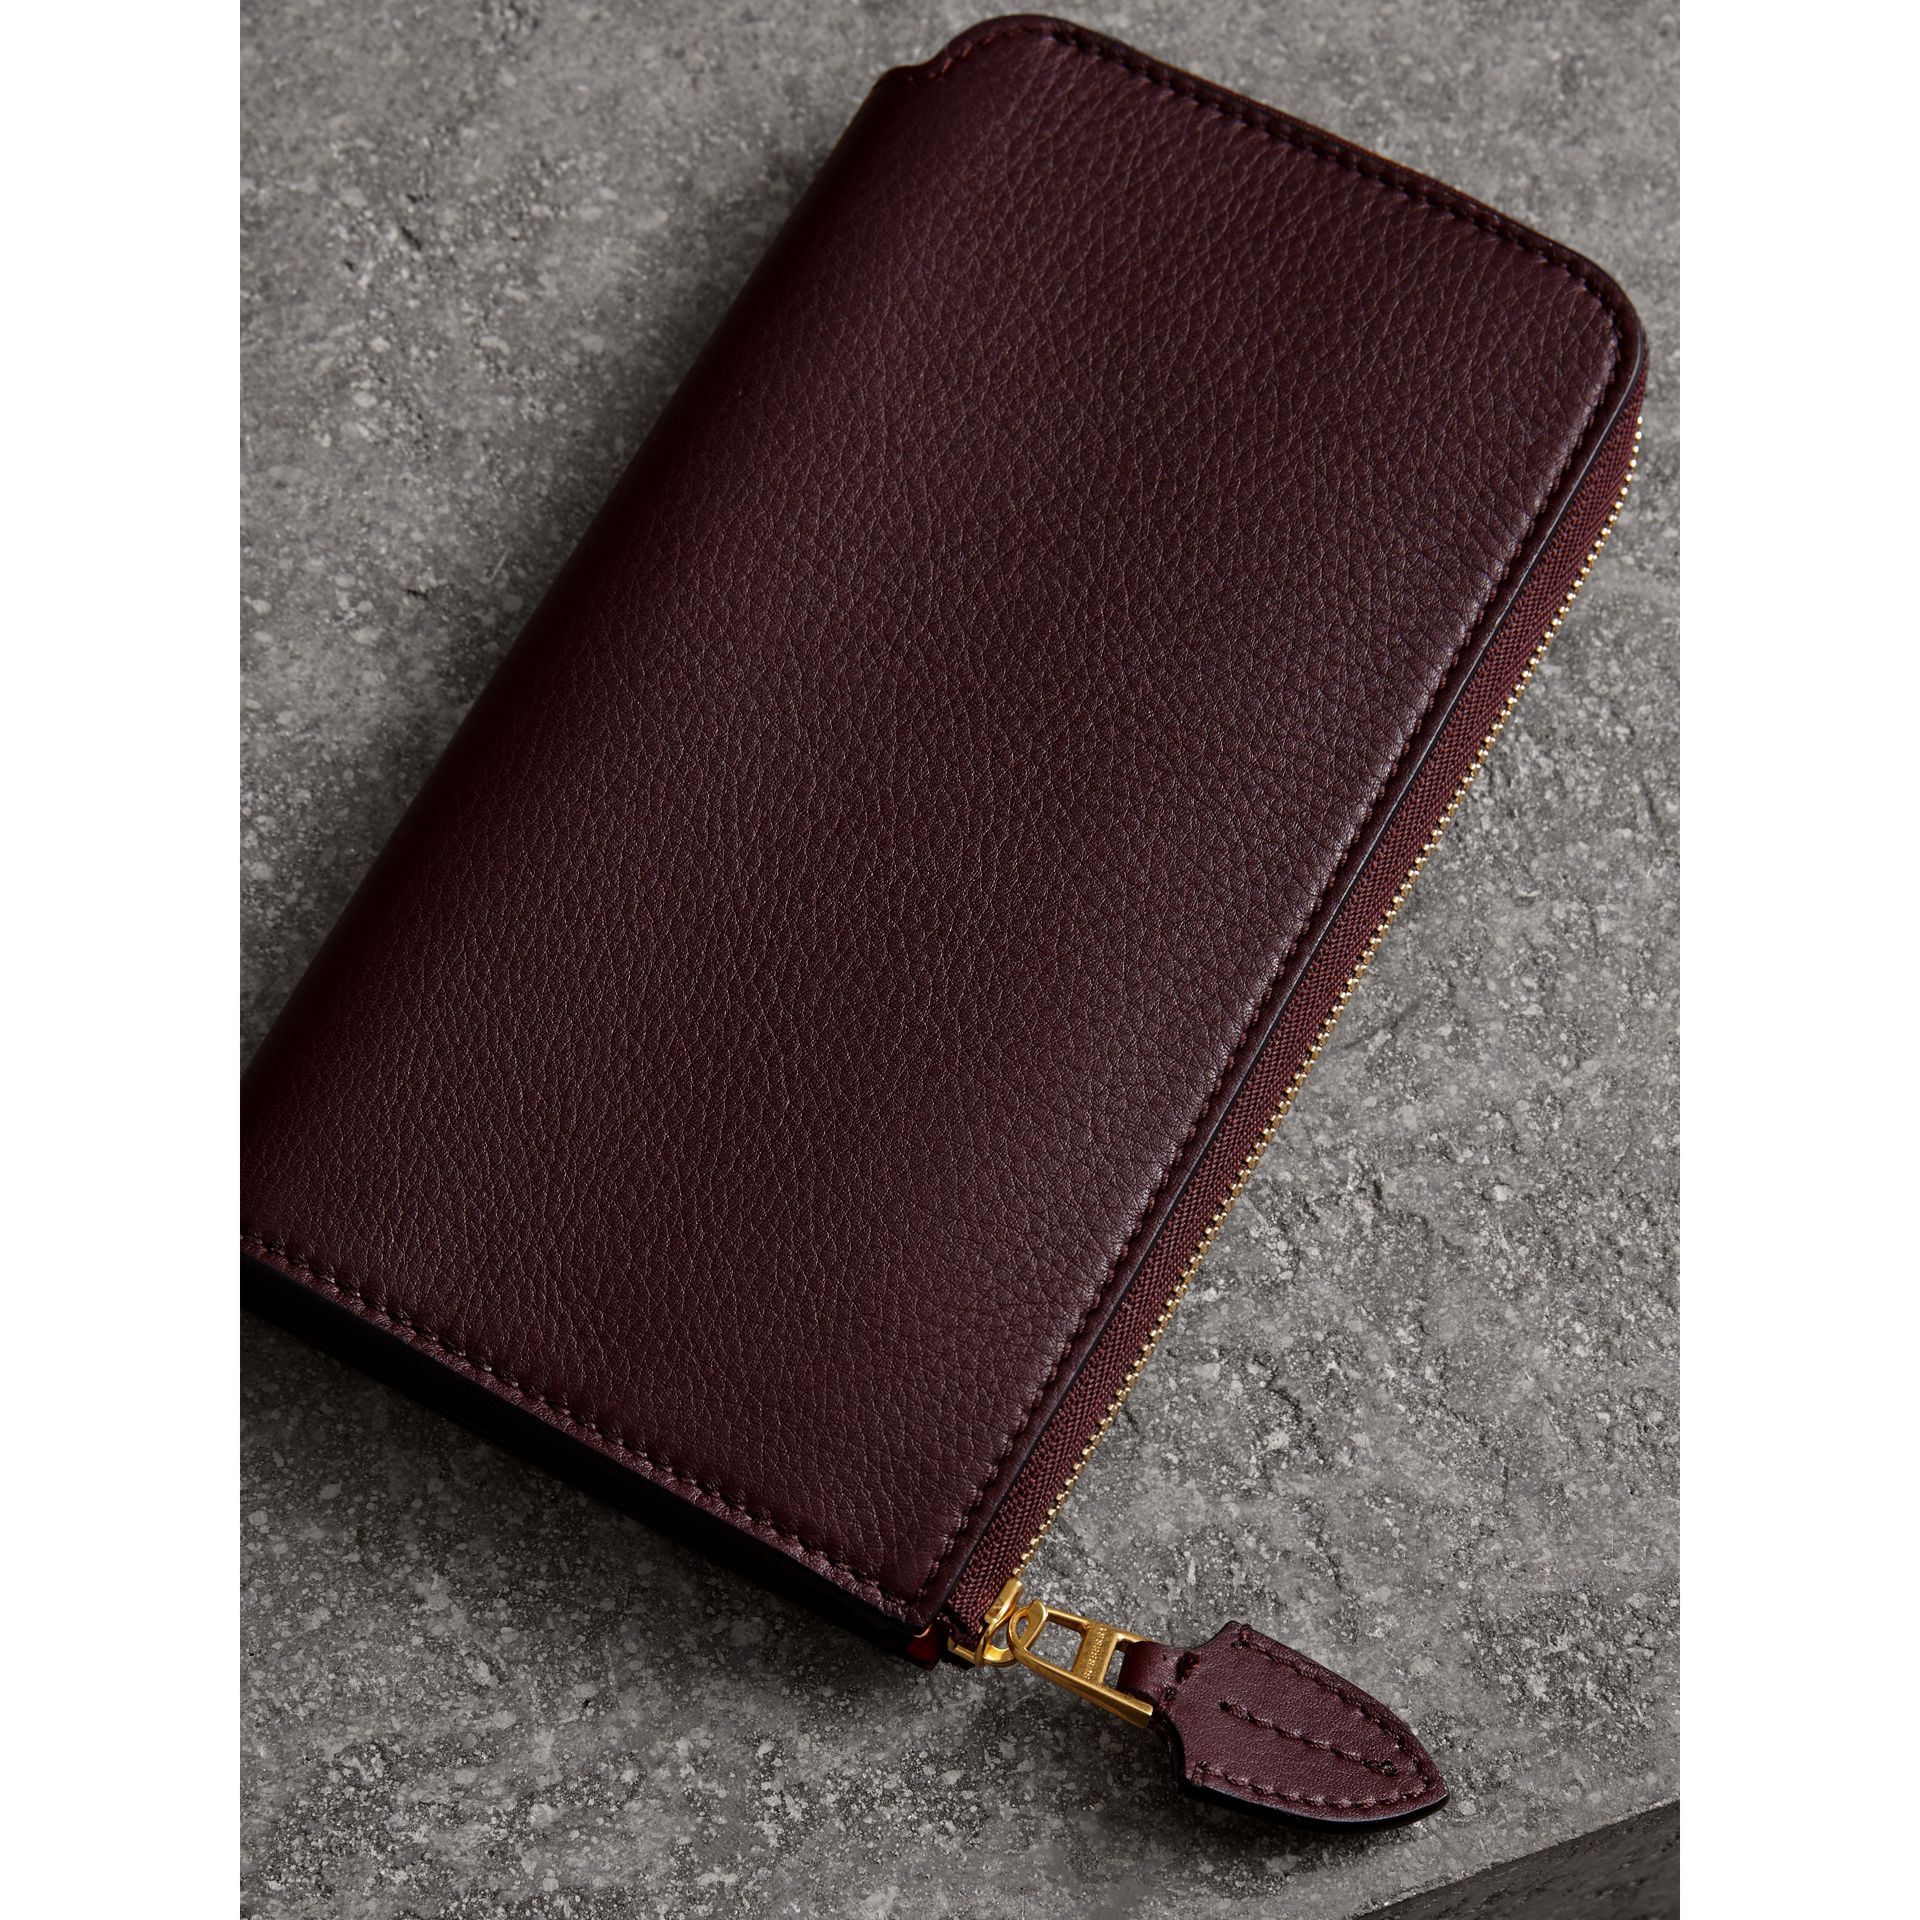 Two-tone Leather Ziparound Wallet and Coin Case in Deep Claret - Women | Burberry - gallery image 2